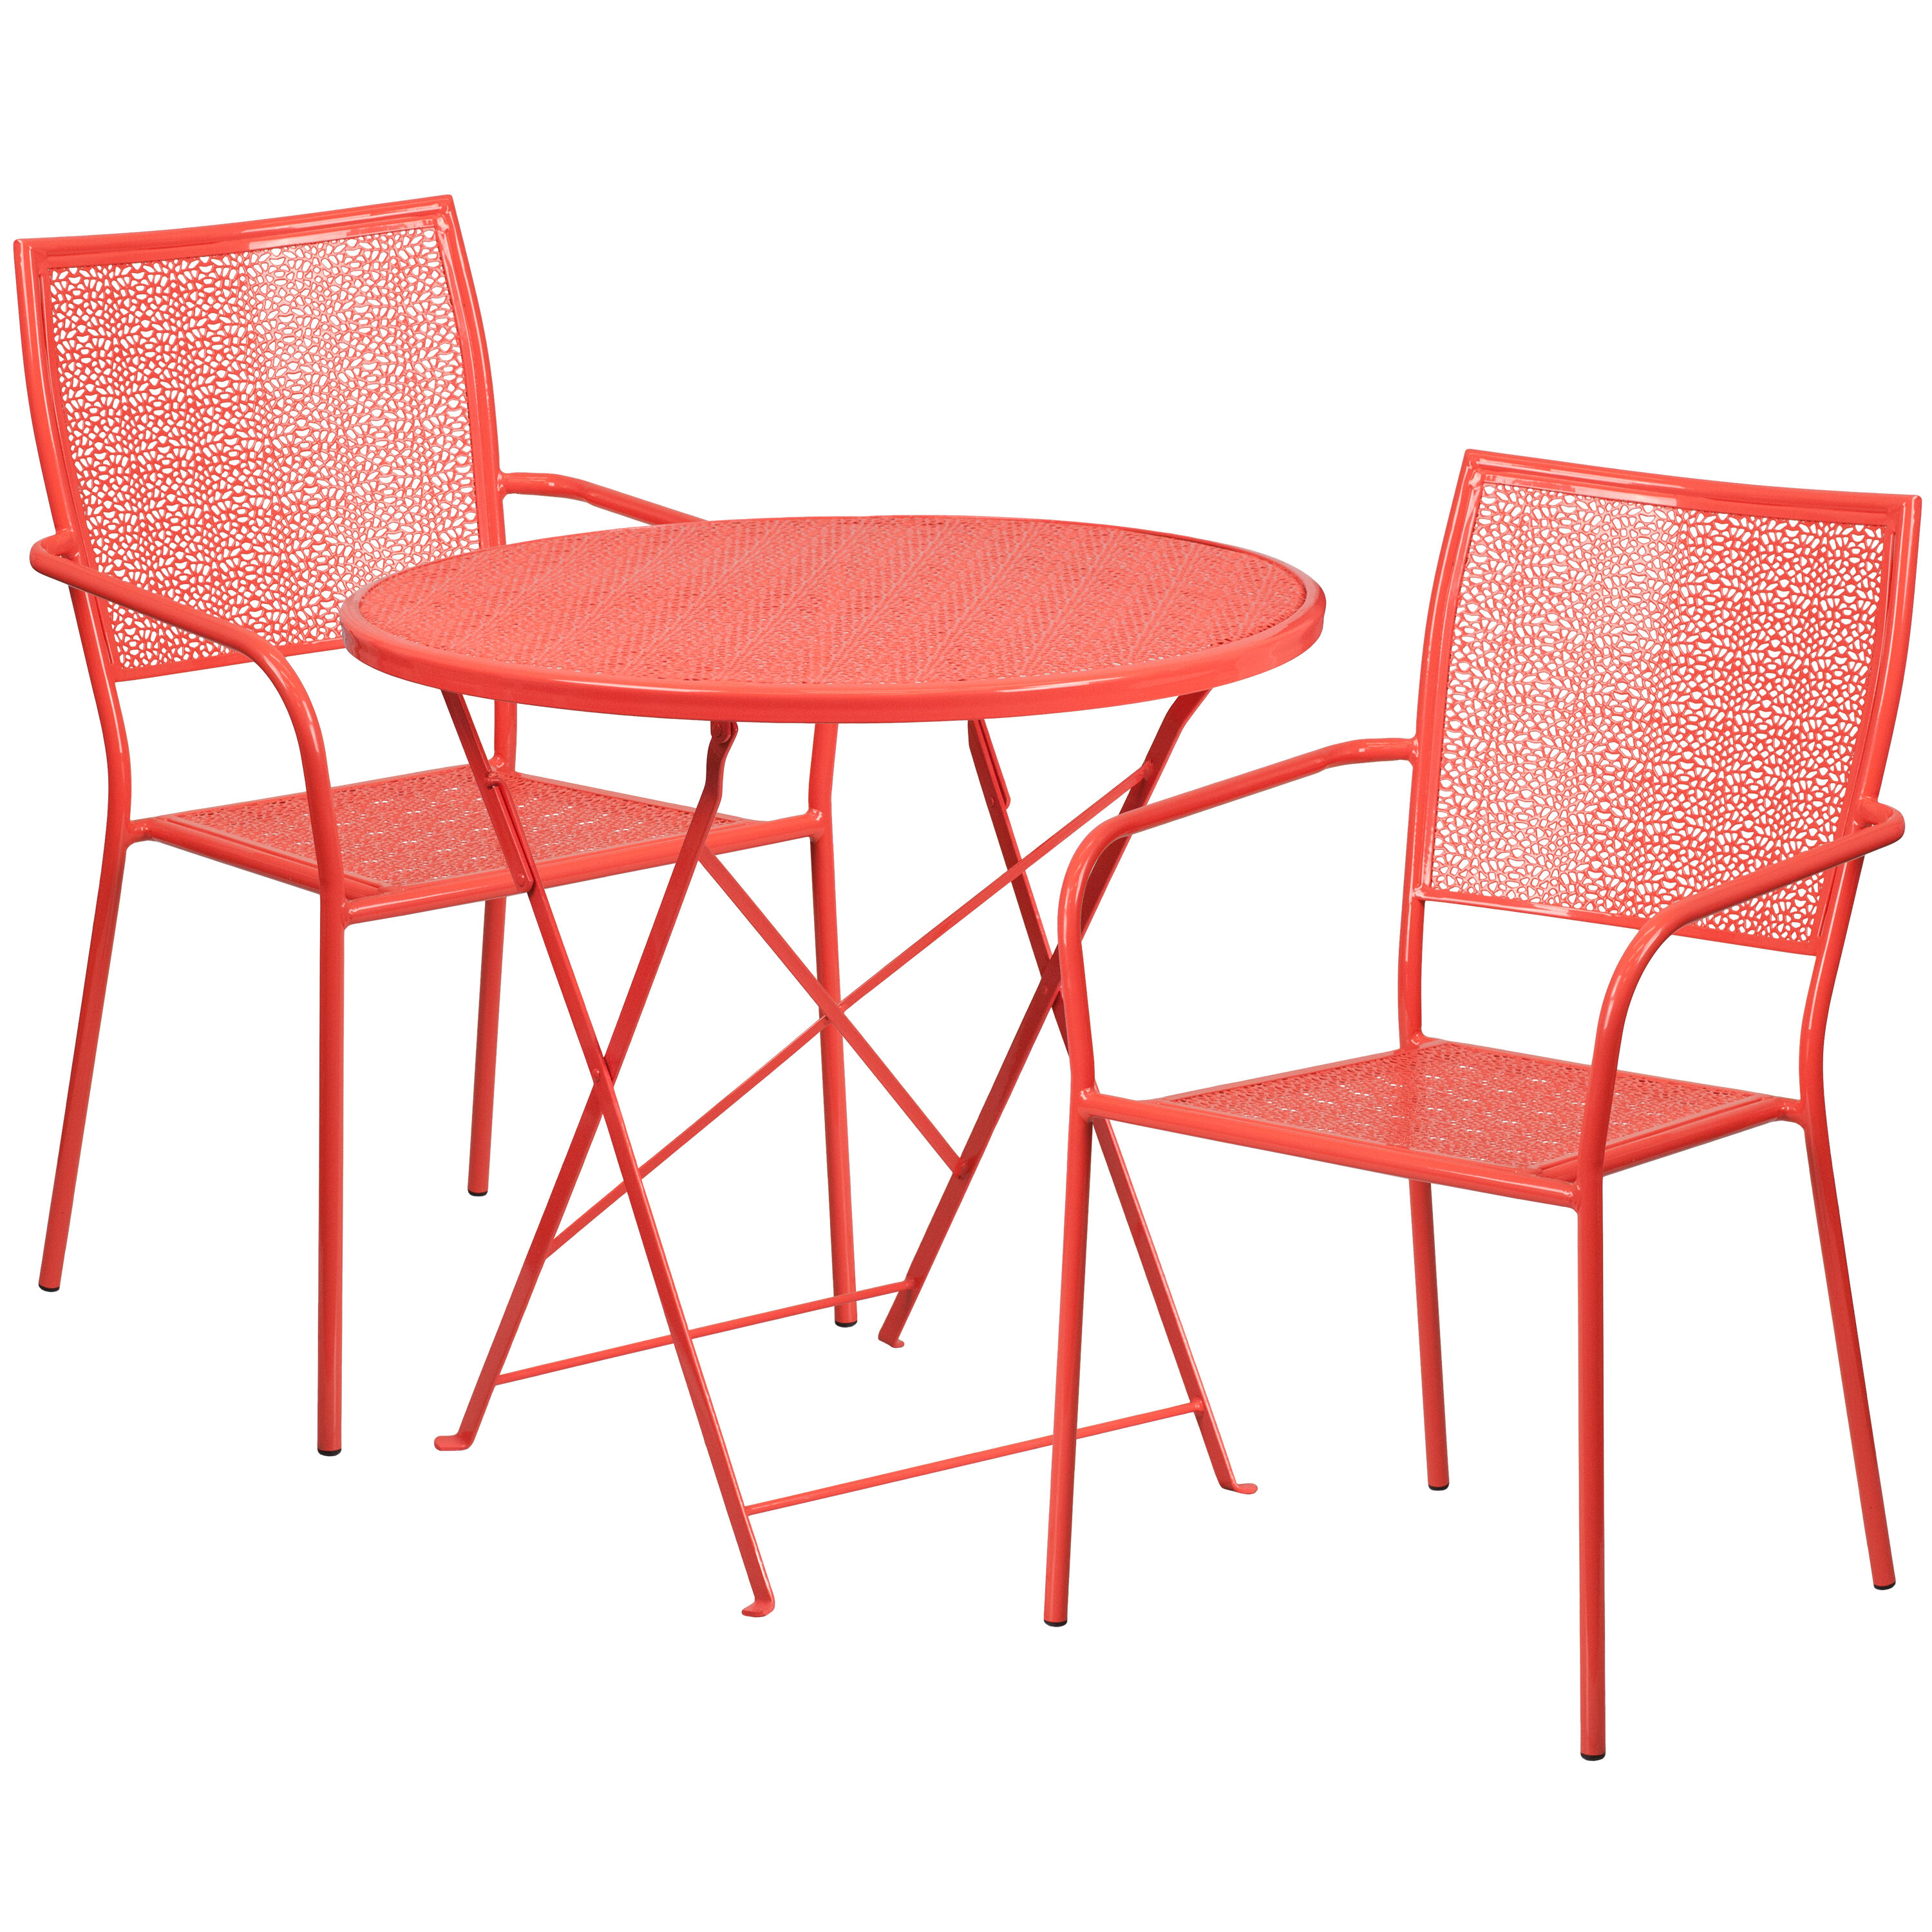 Incroyable ... Our 30u0027u0027 Round Coral Indoor Outdoor Steel Folding Patio Table Set With 2